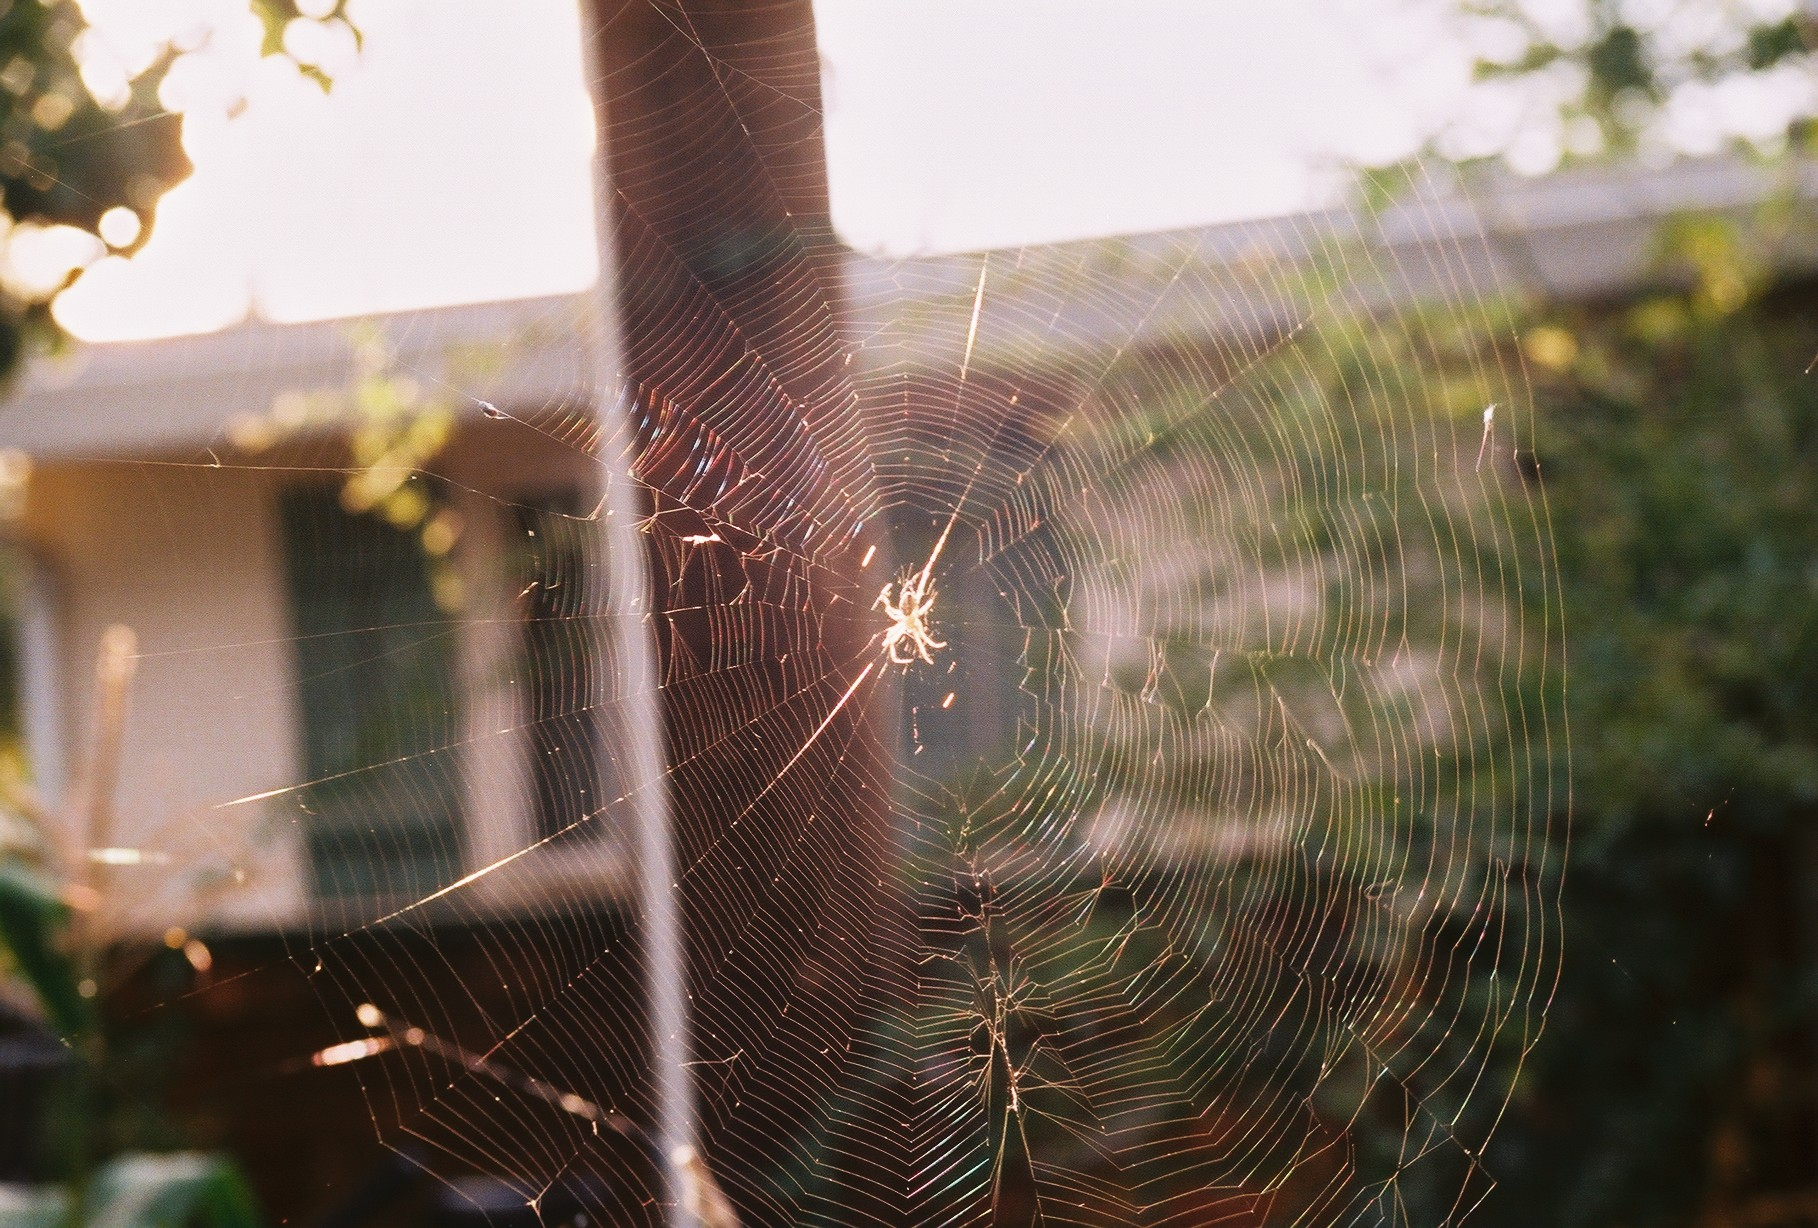 Another spider web